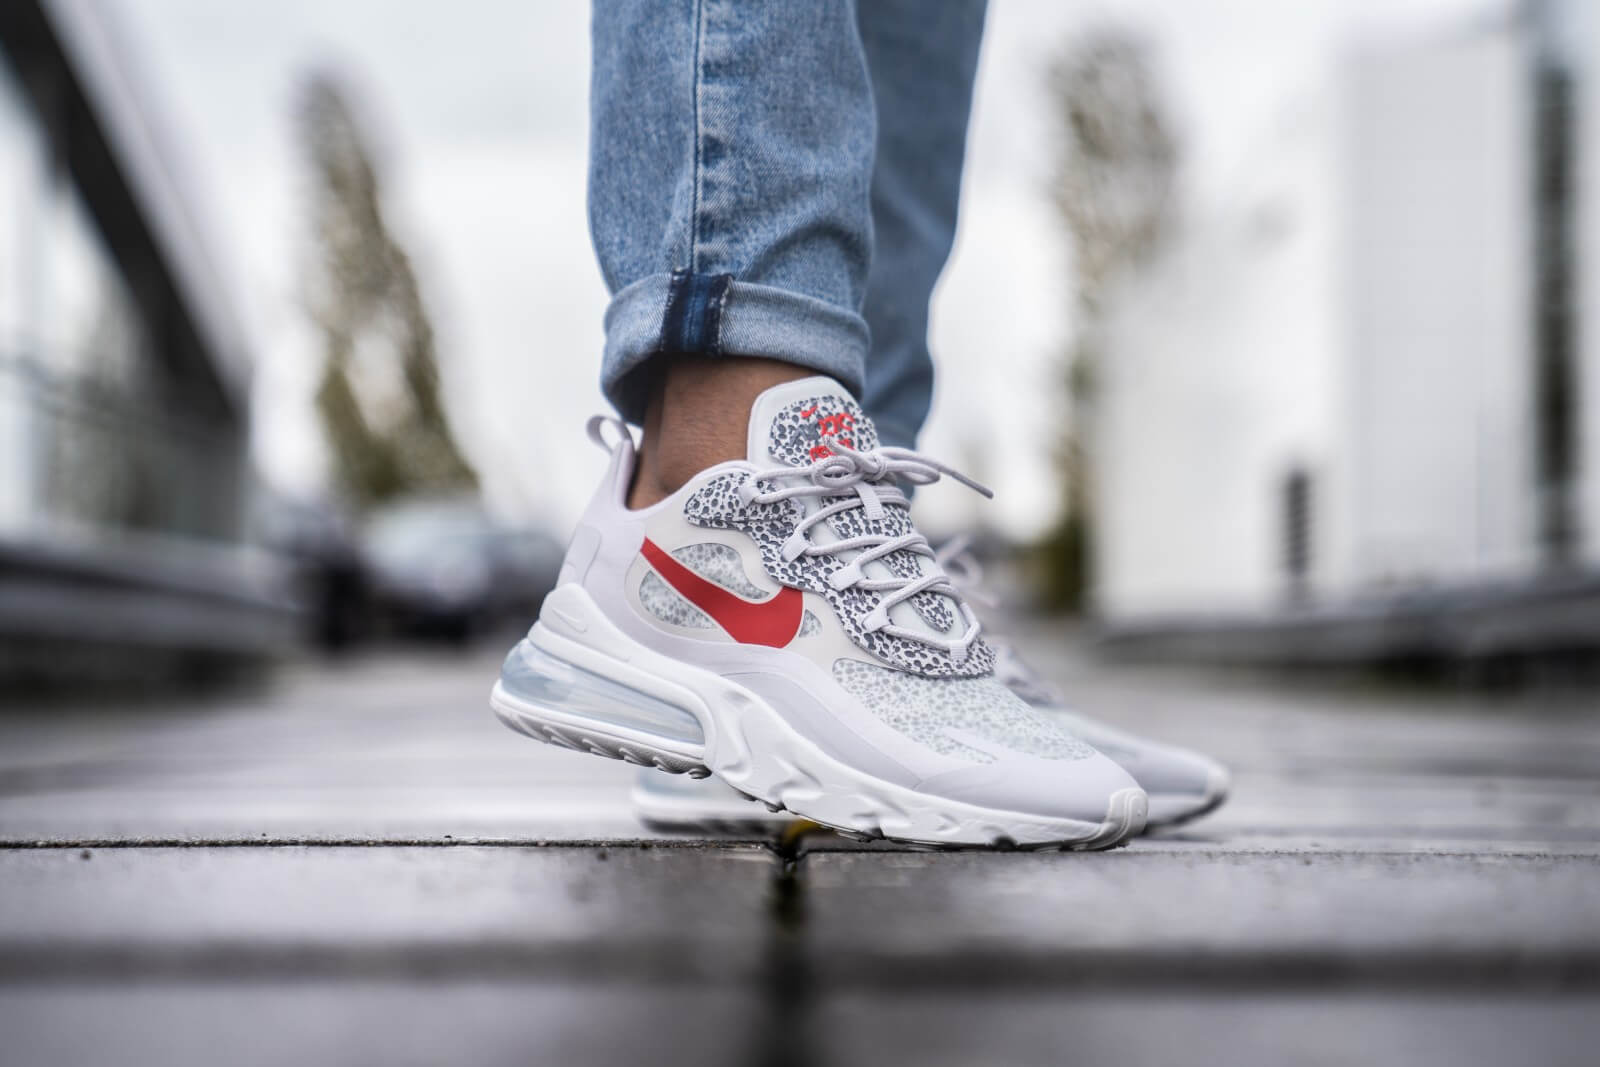 Nike Air Max 270 React Neutral Grey/University Red - CT2535-001